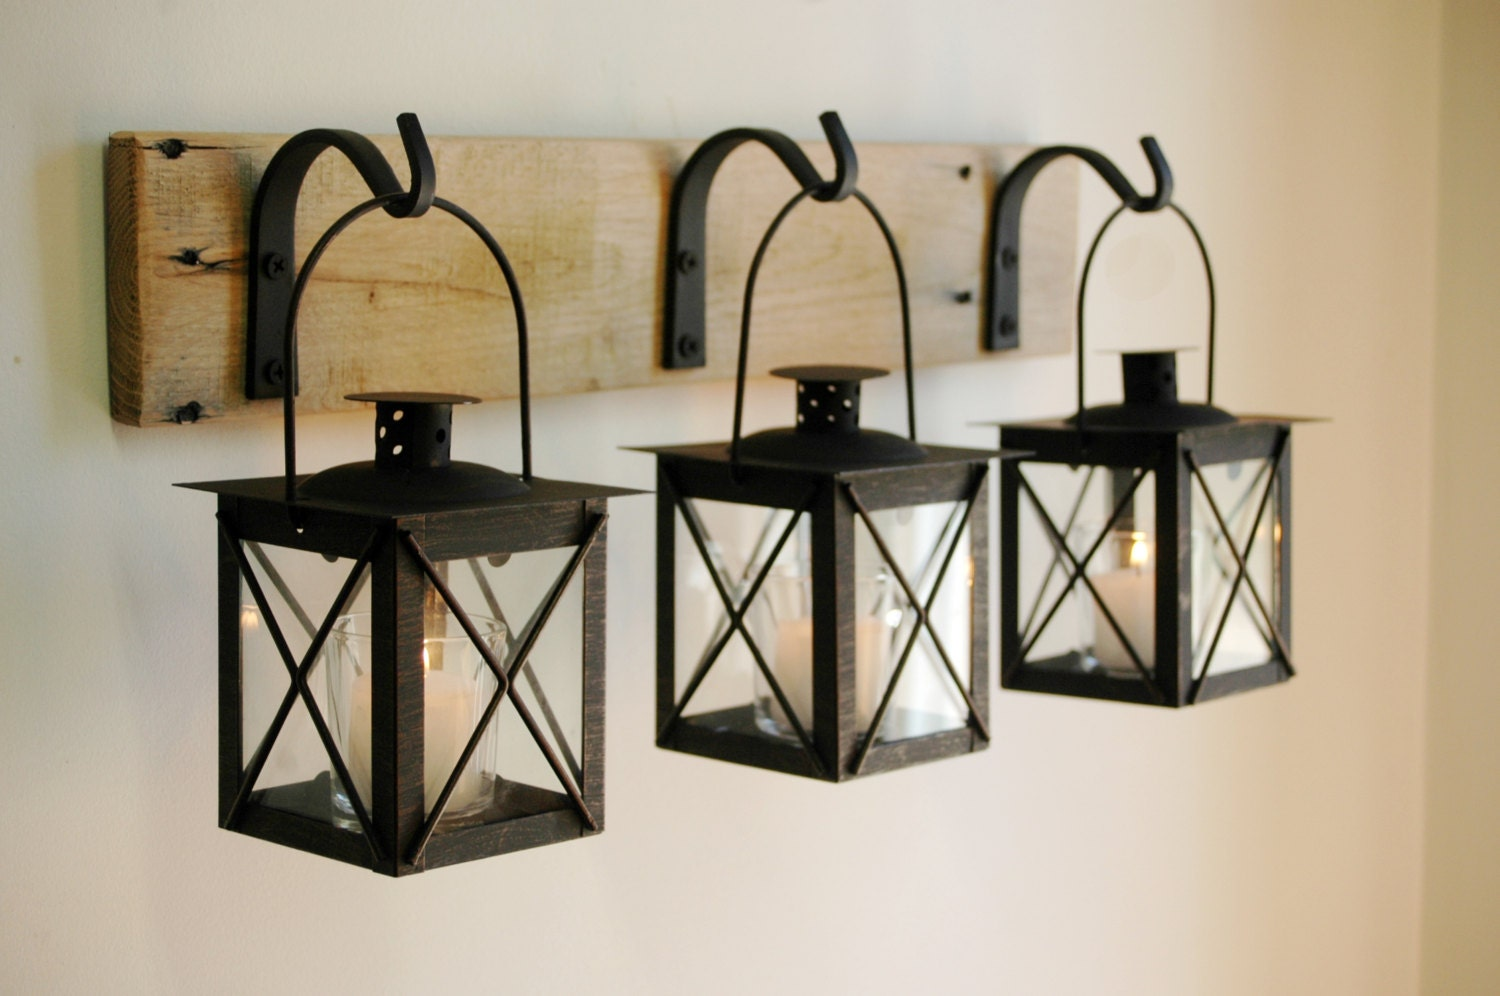 Black lantern trio wall decor home decor rustic decor for Black kitchen wall decor